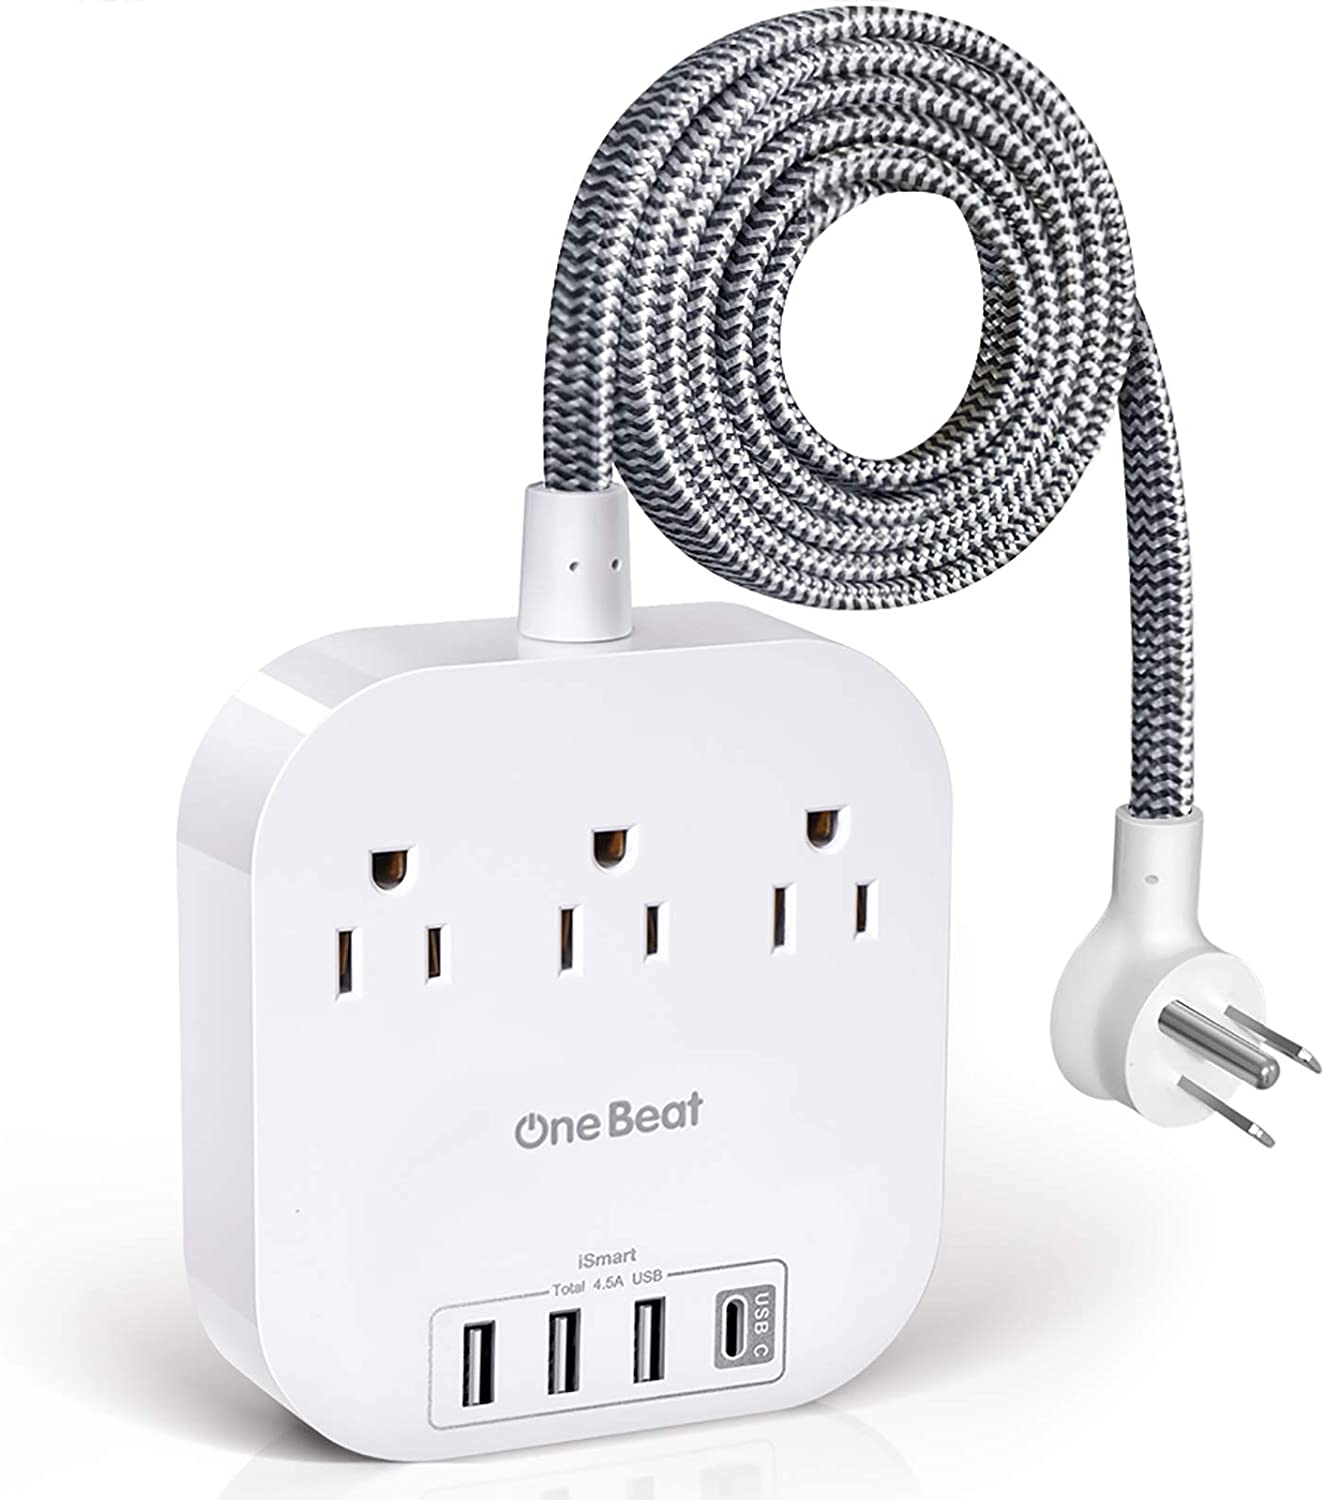 One Beat 3 Outlets 4 USB Ports 5ft Power Strip $15.24 Coupon